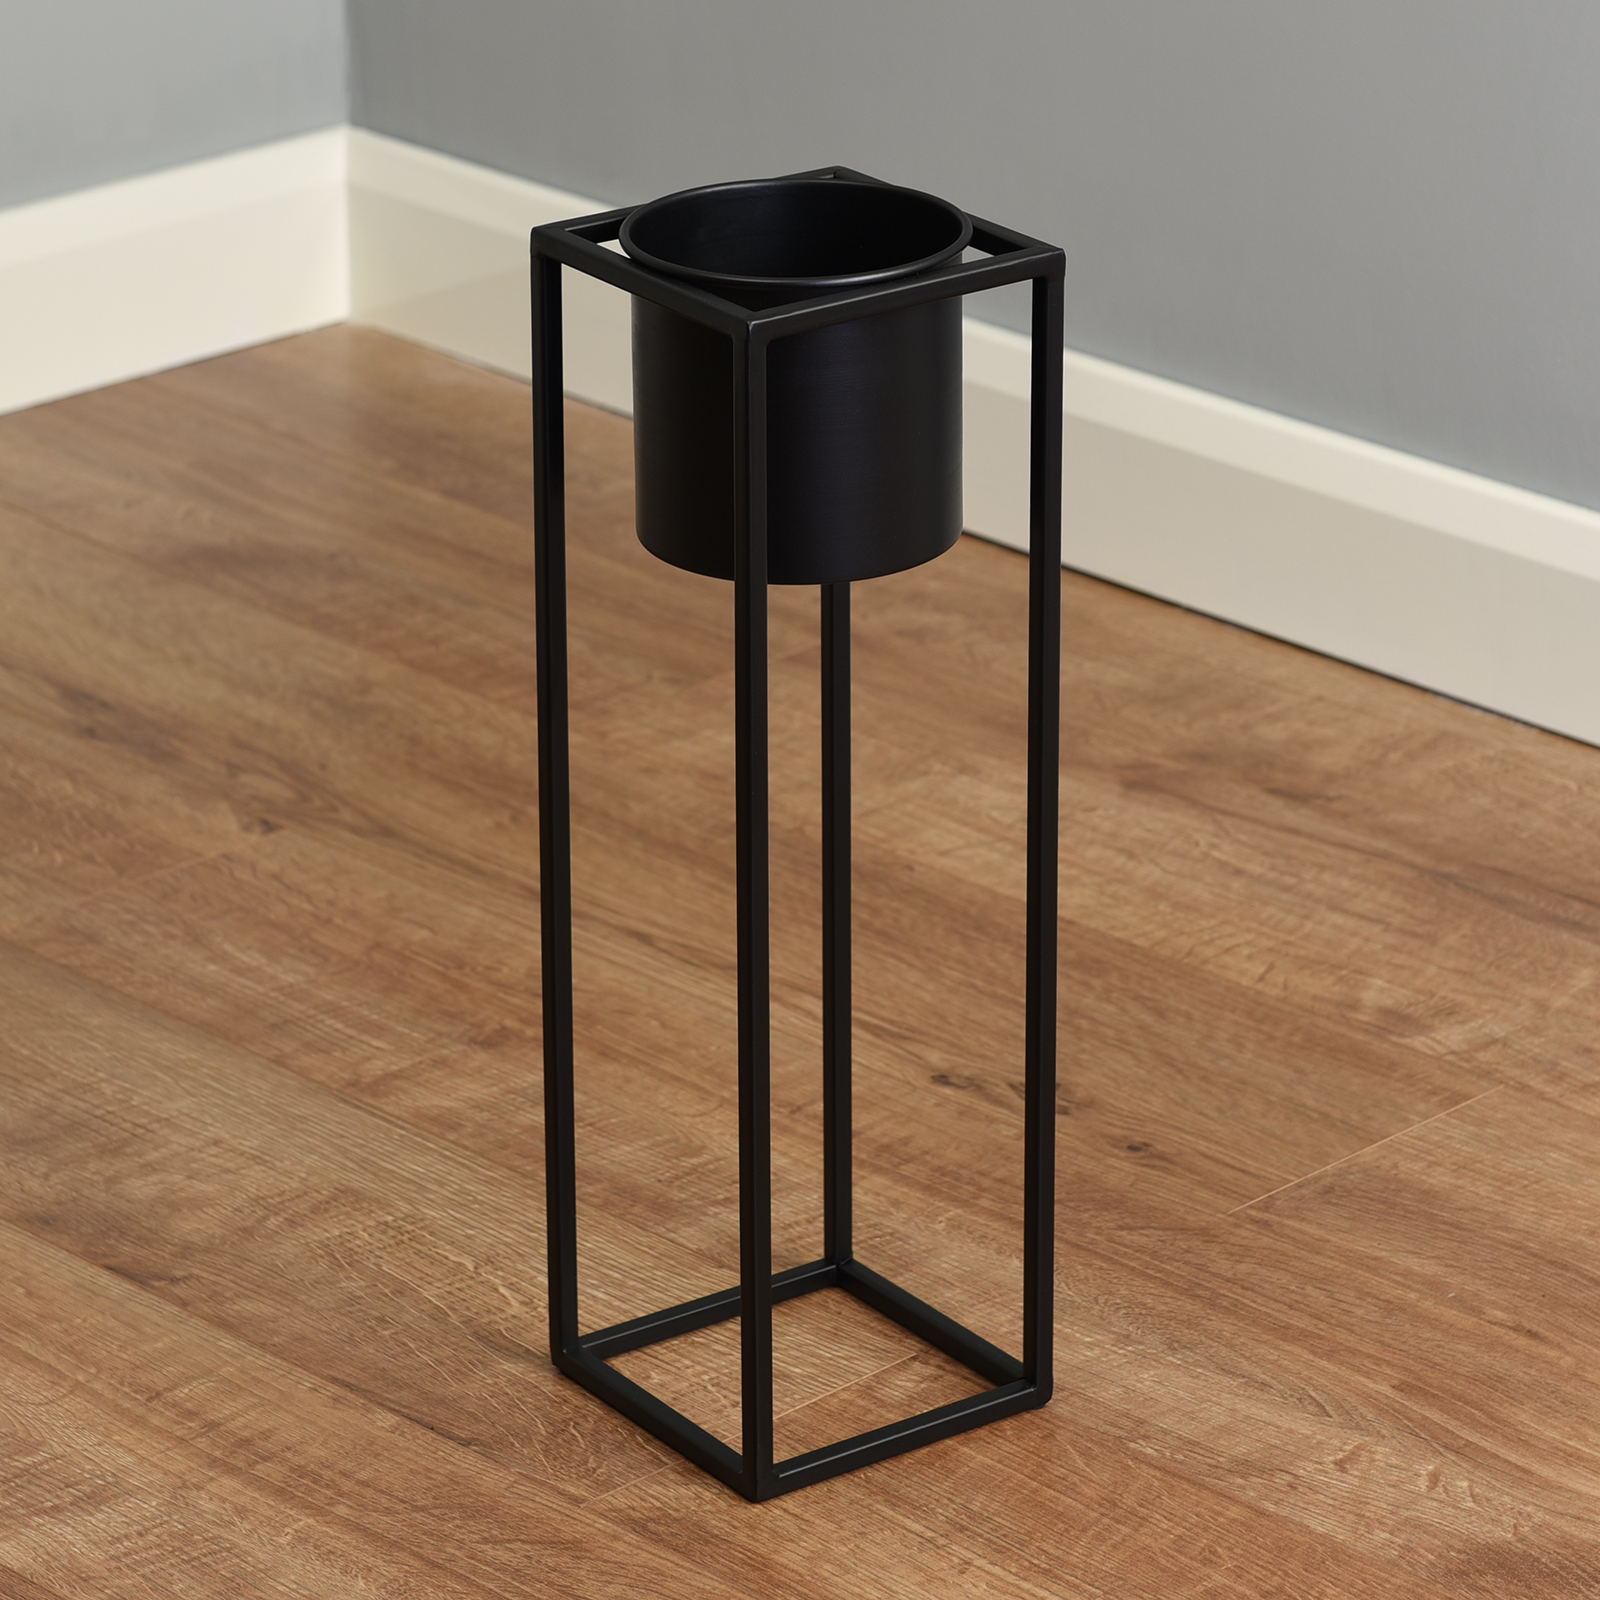 Hartleys-Small-Round-Freestanding-Black-Metal-Plant-Pot-Tall-Square-Floor-Stand thumbnail 12